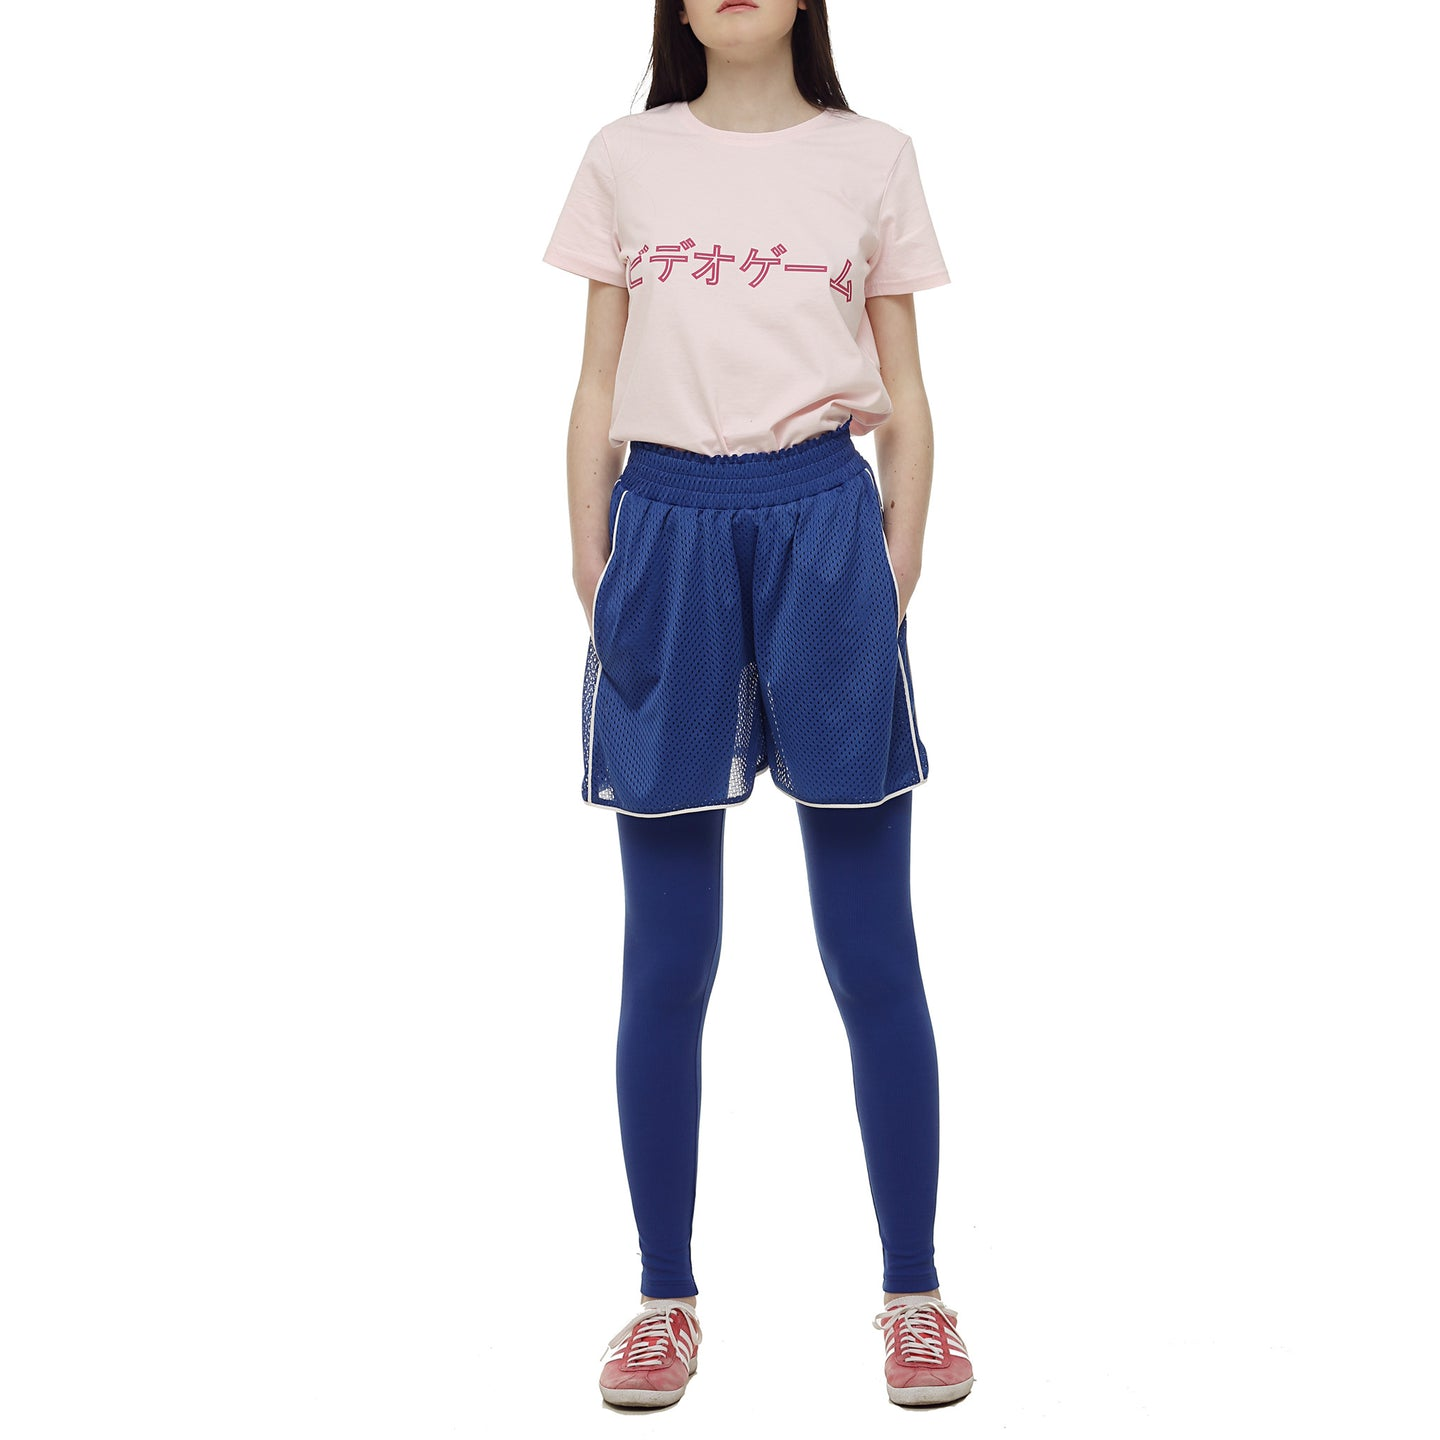 Blue Short for workout - krawaii.com